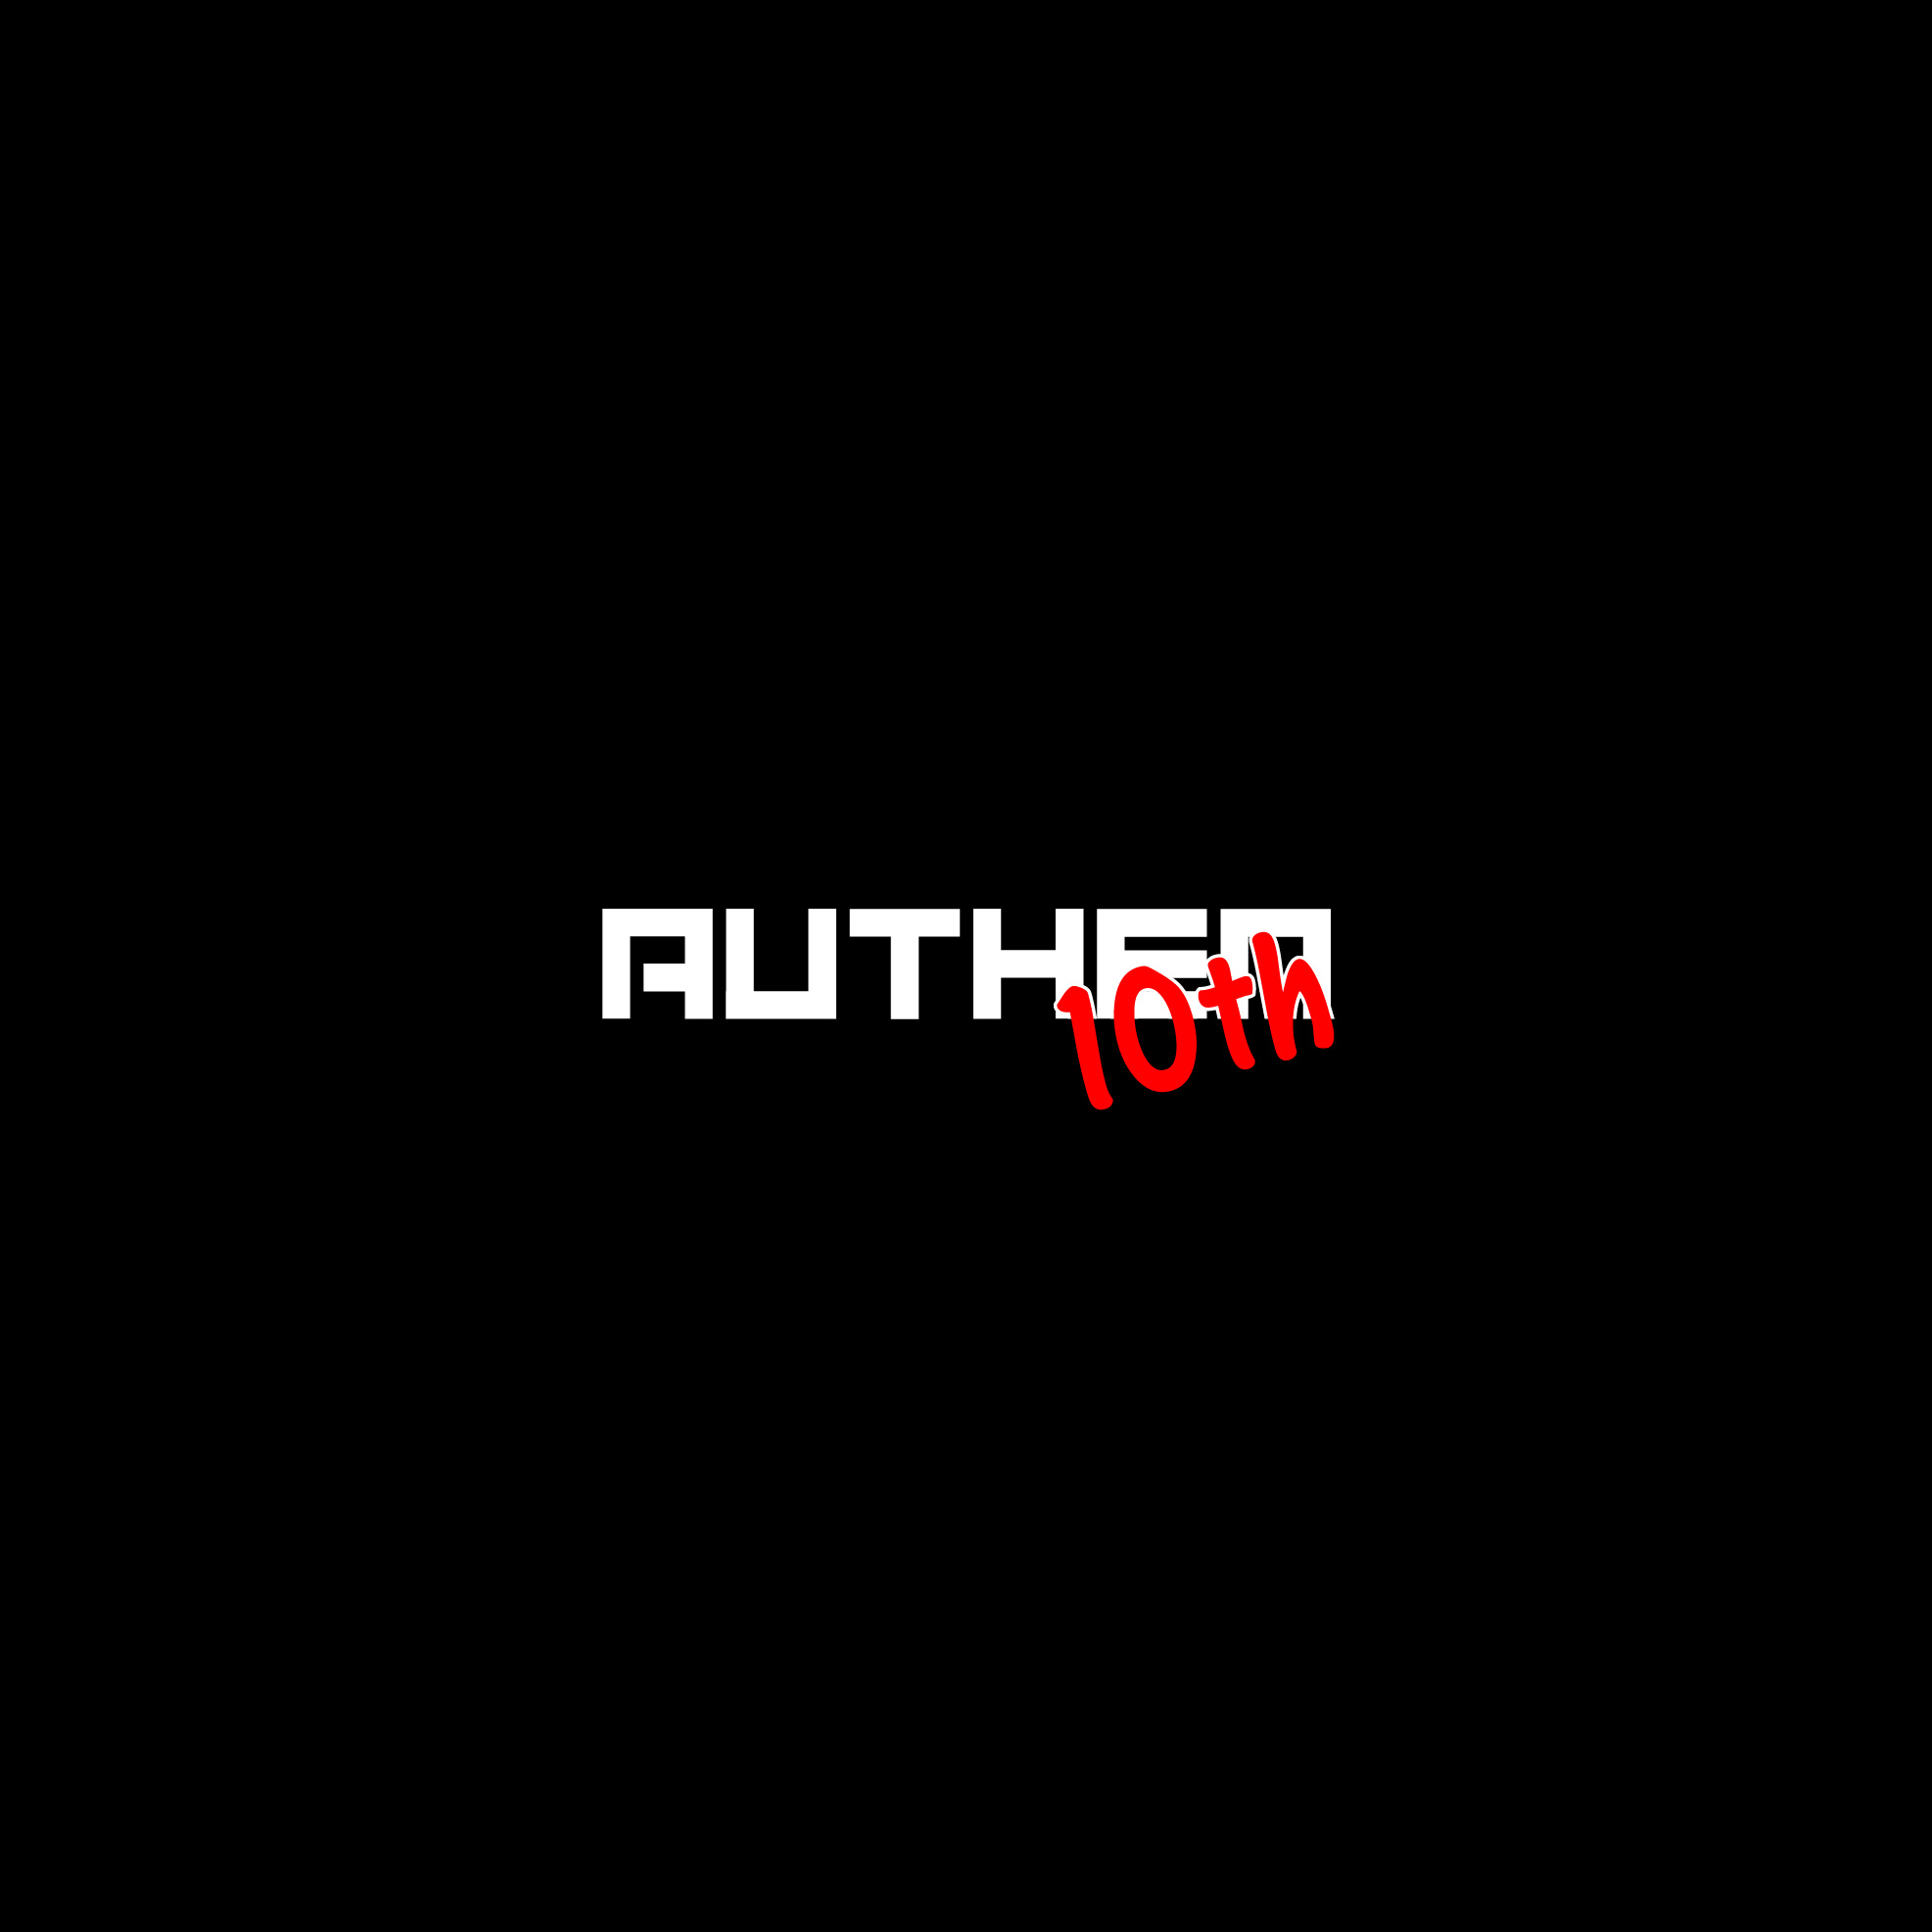 AUTHEN 10th ANNIVERSARY